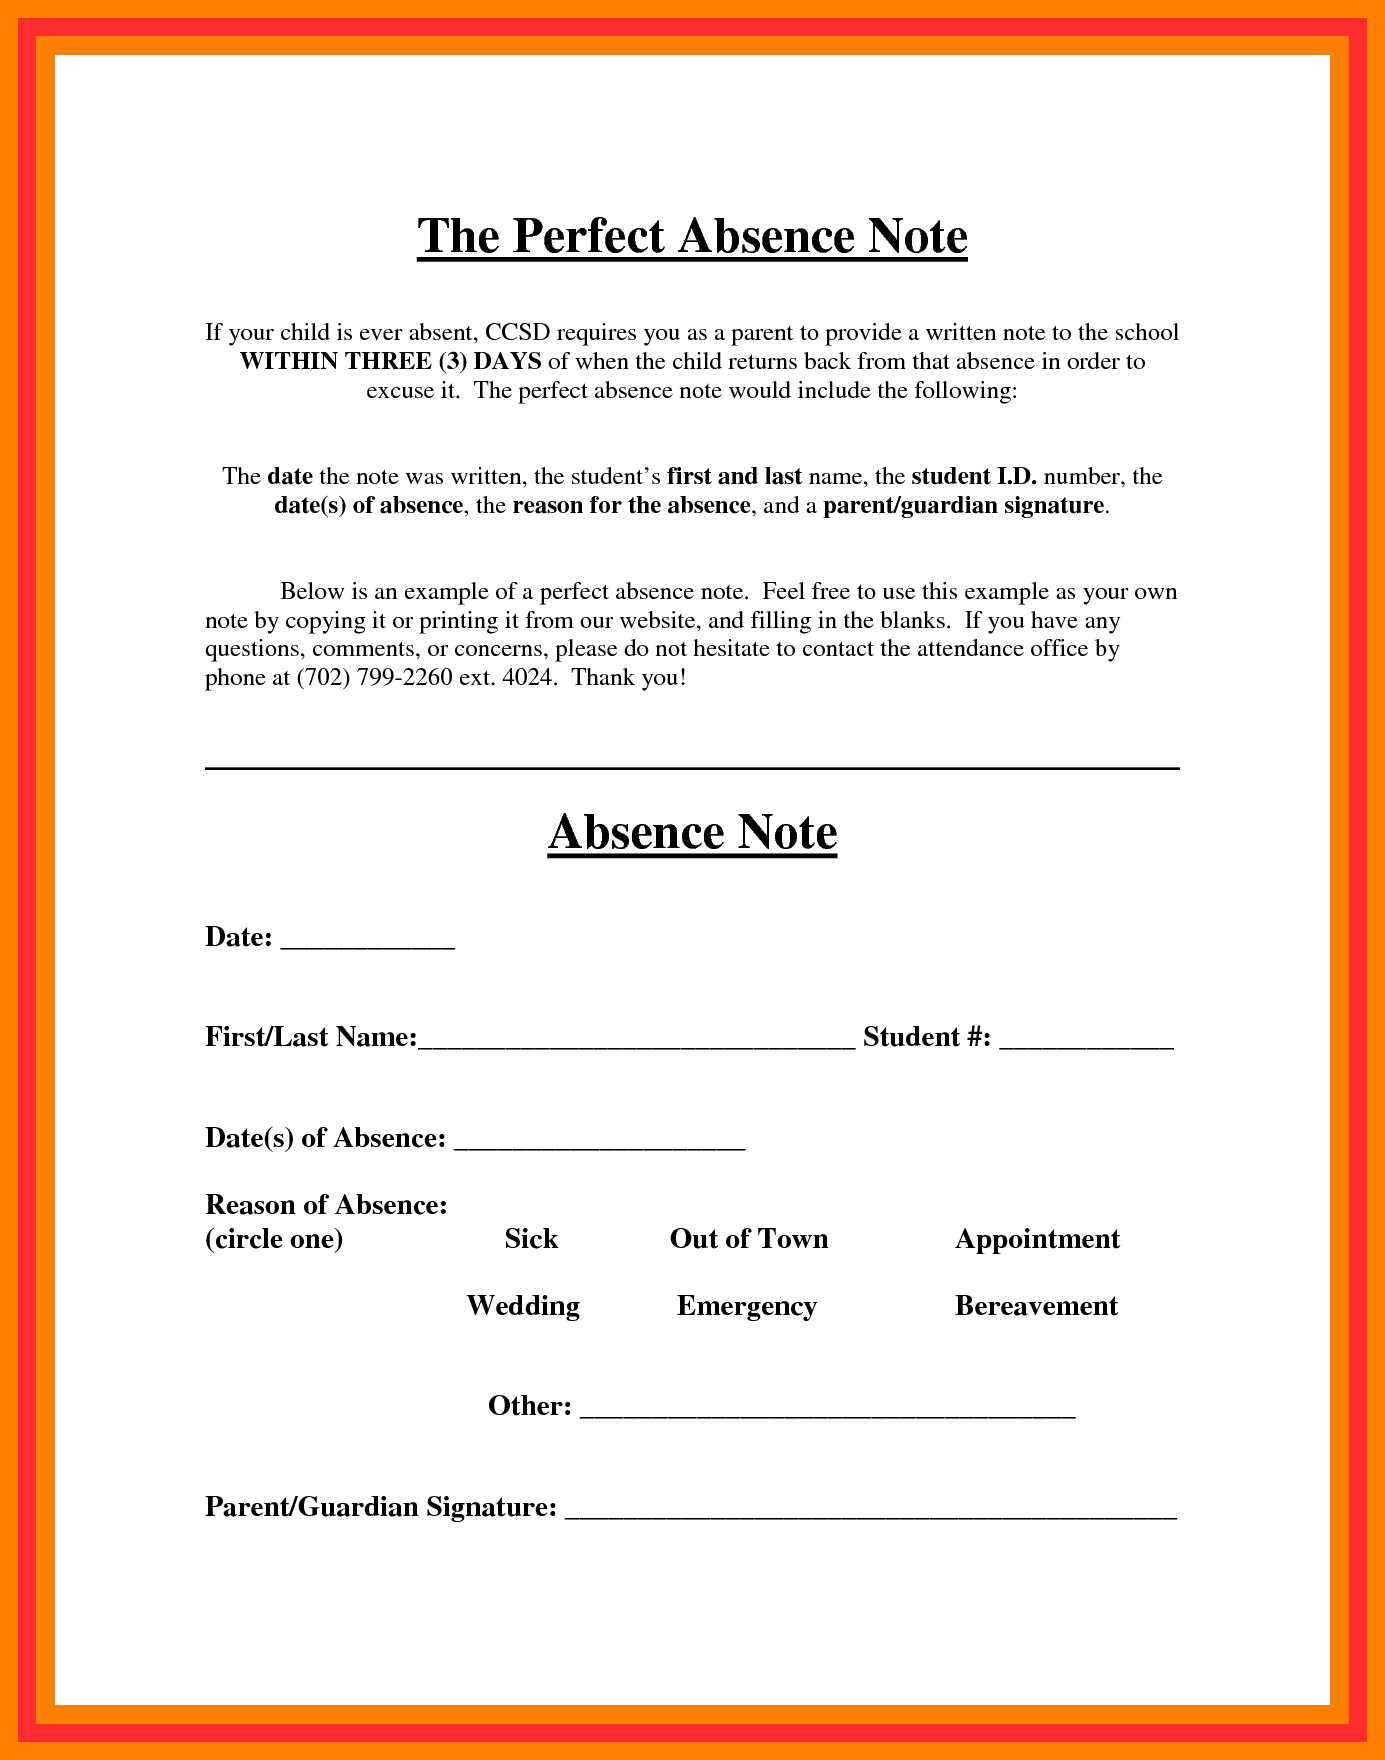 014 Doctorotes For School Templates Template Ideas Dentist Intended For Dentist Note Template